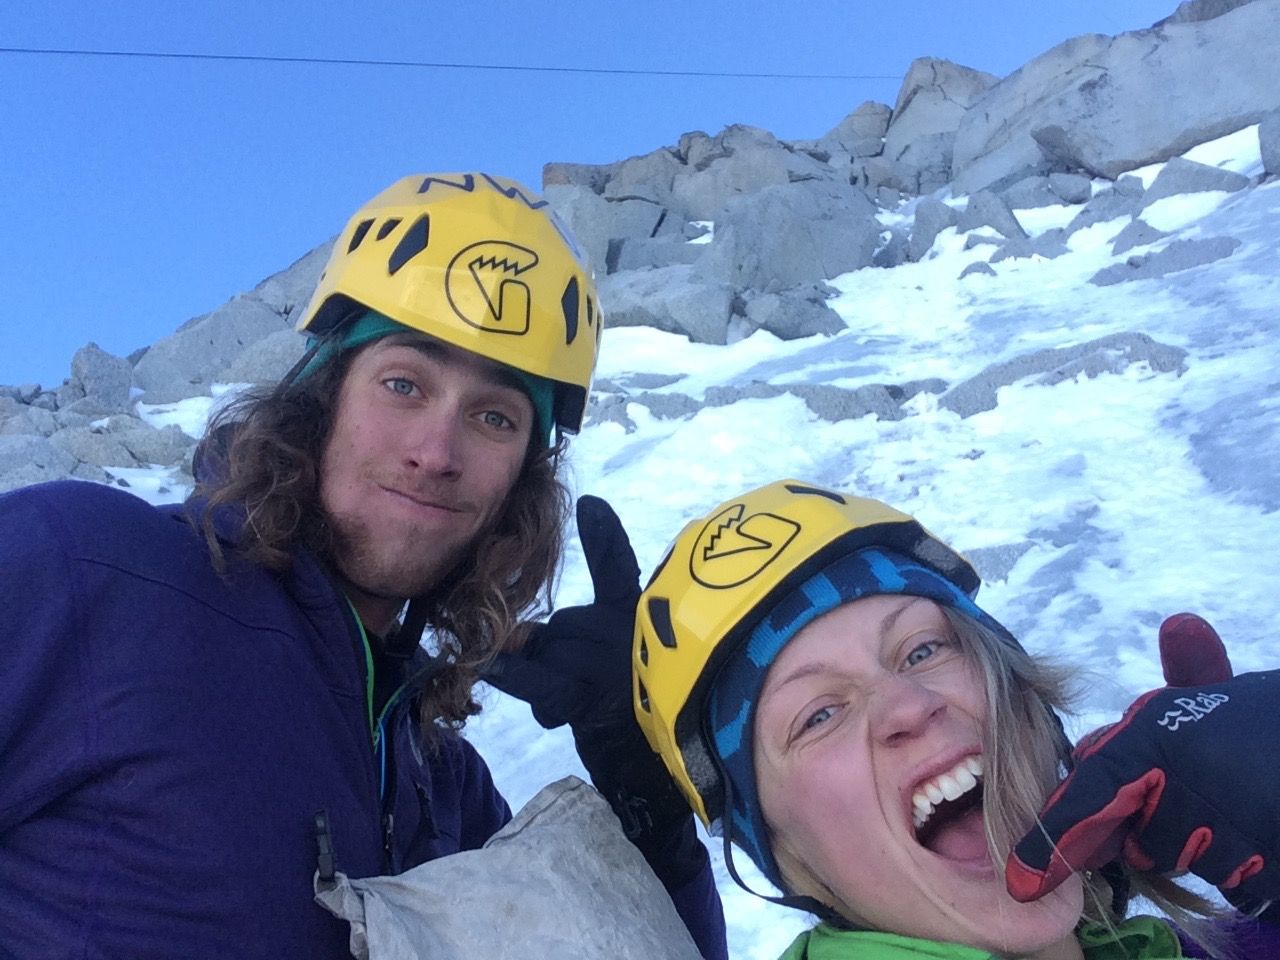 Jackson Marvell and I eating cookies / macaroons on the Frendo Spur. Mixy Mixy.